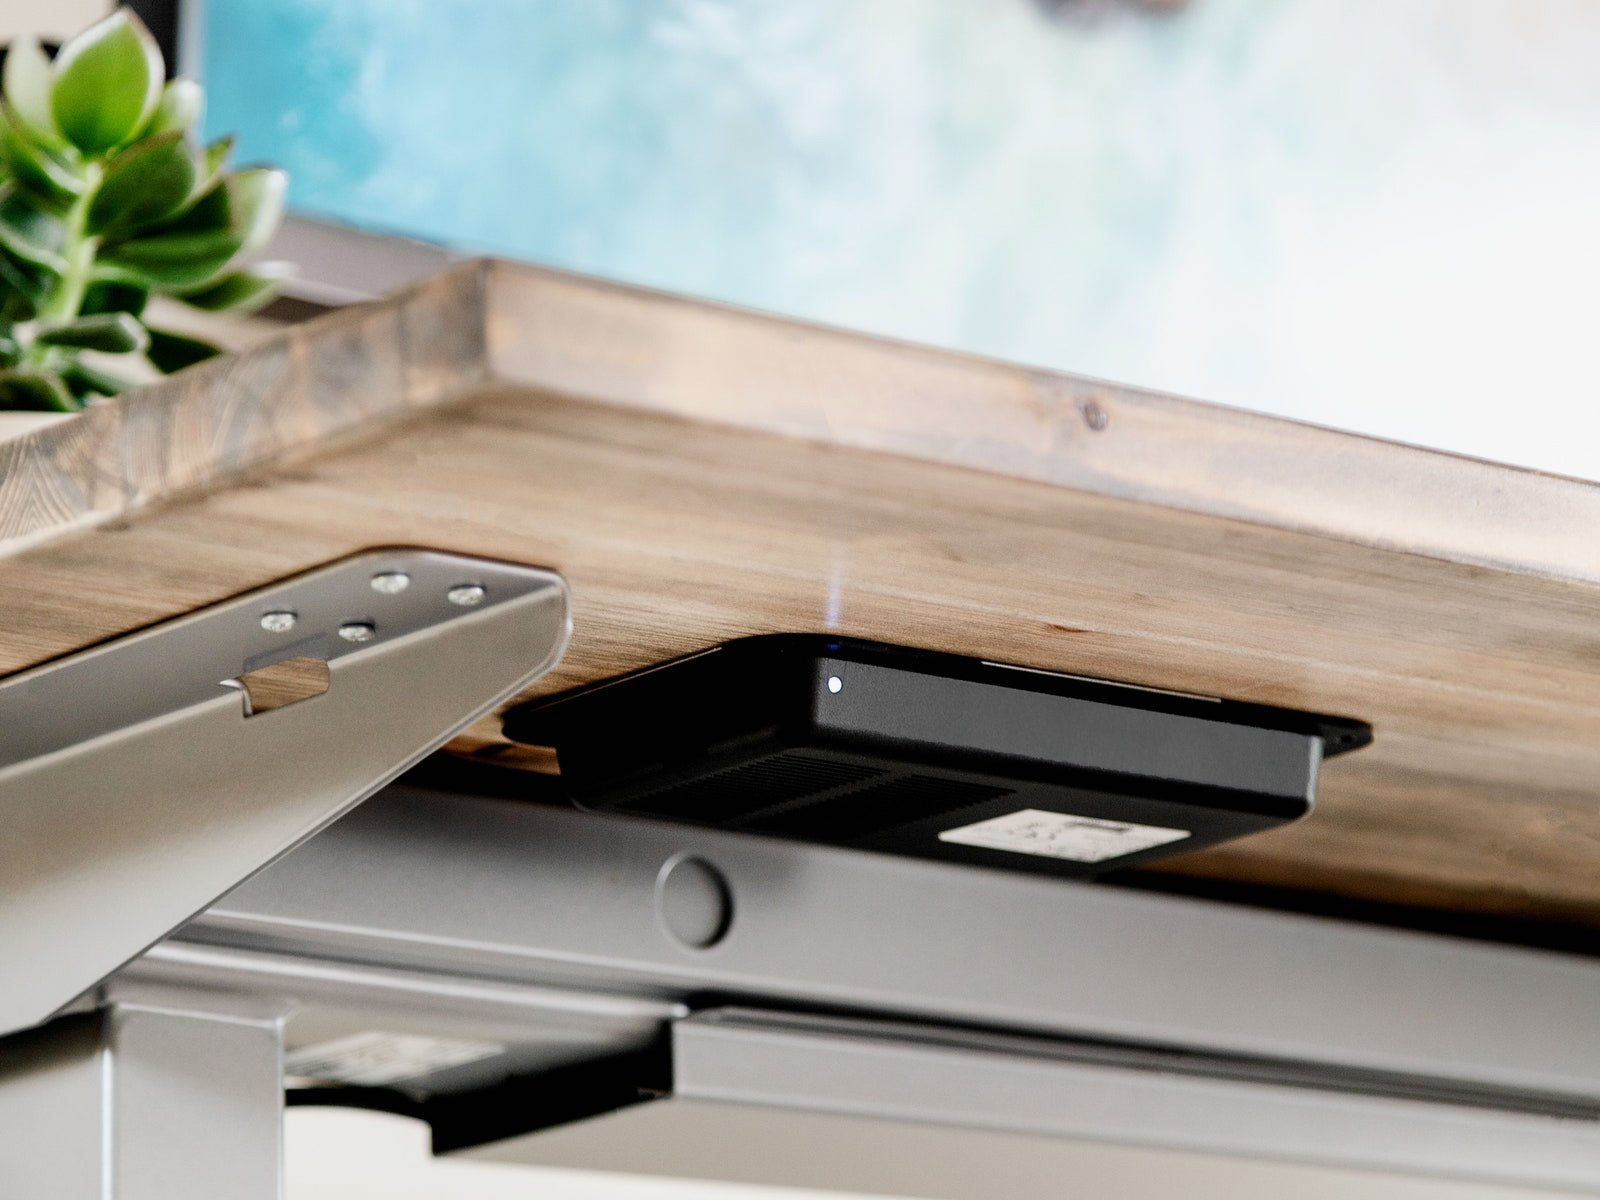 Image may contain Wood Furniture Tabletop Plywood Cell Phone Electronics Mobile Phone and Phone